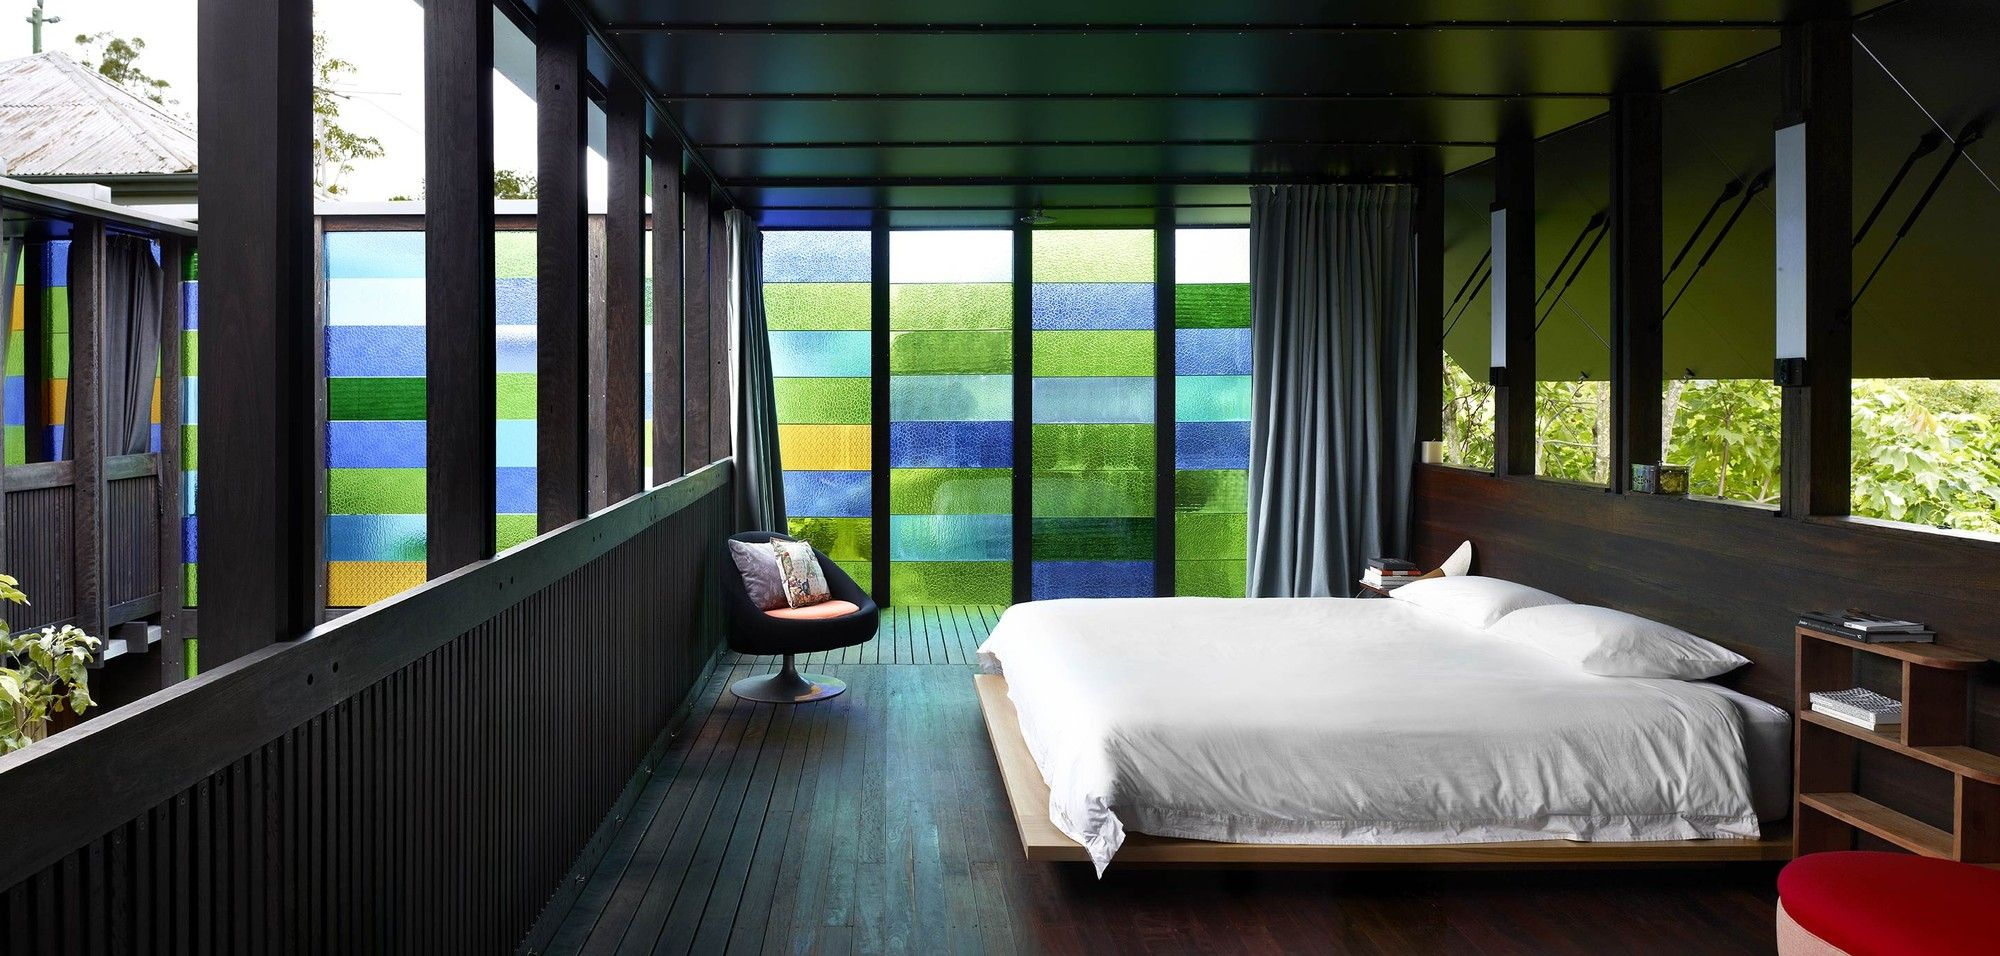 Gallery Of Raven Street House / James Russell Architect   7. RavensColored  GlassBedroom IdeasDesign ...